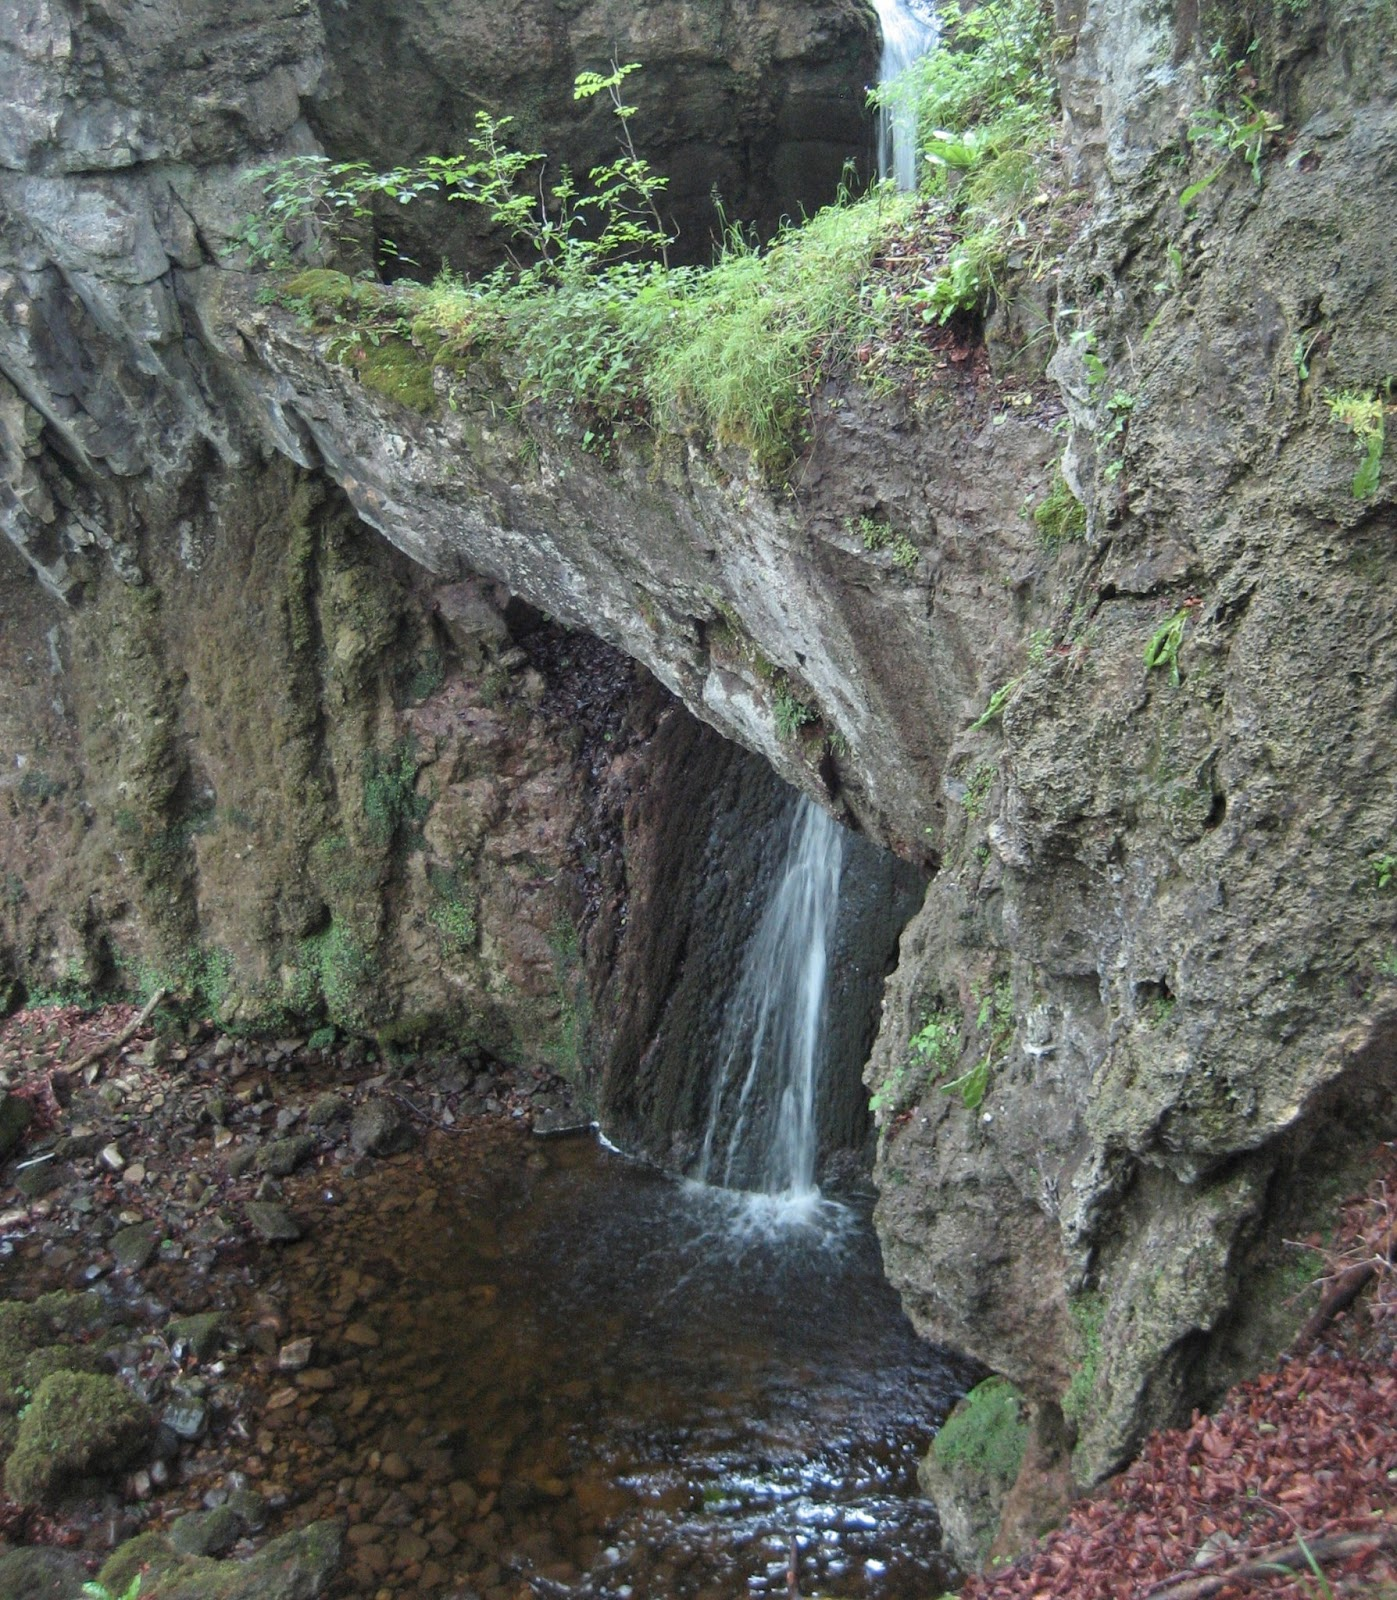 Ease Gill Force, Ingleton – a notable feature on the North Craven Fault. Stephen Oldfield